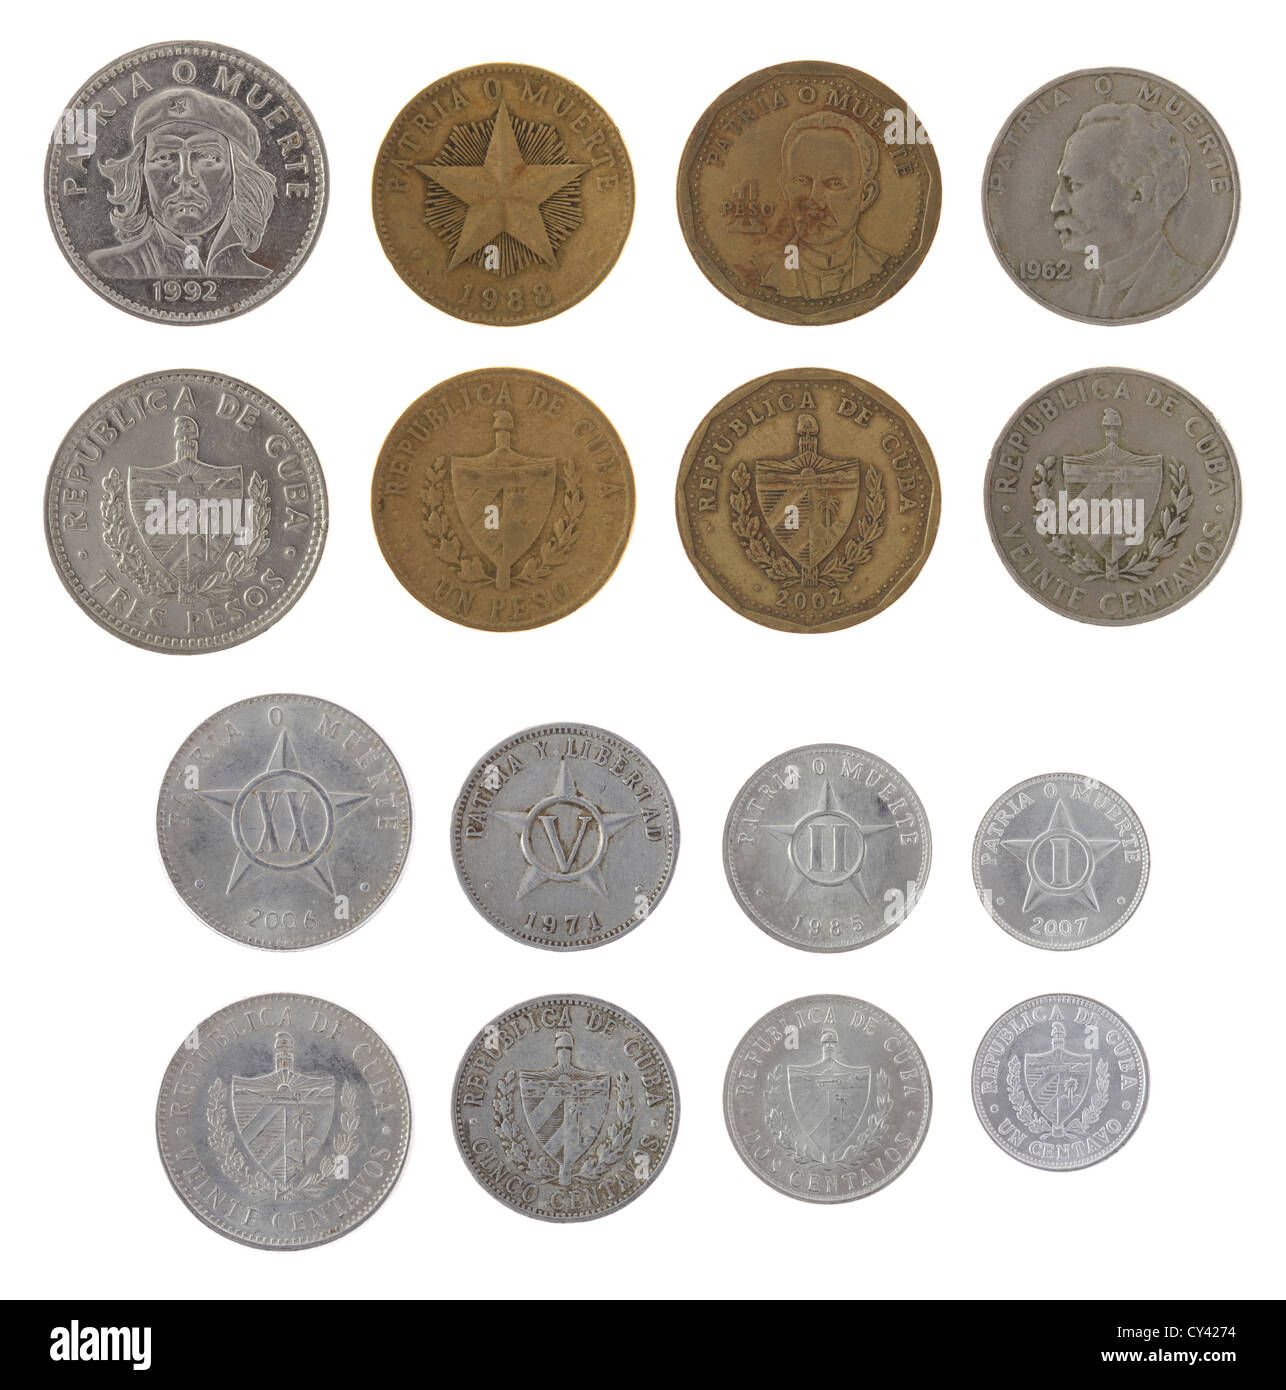 Cuban Peso Coins Isolated On White Stock Photo 51106024 Alamy